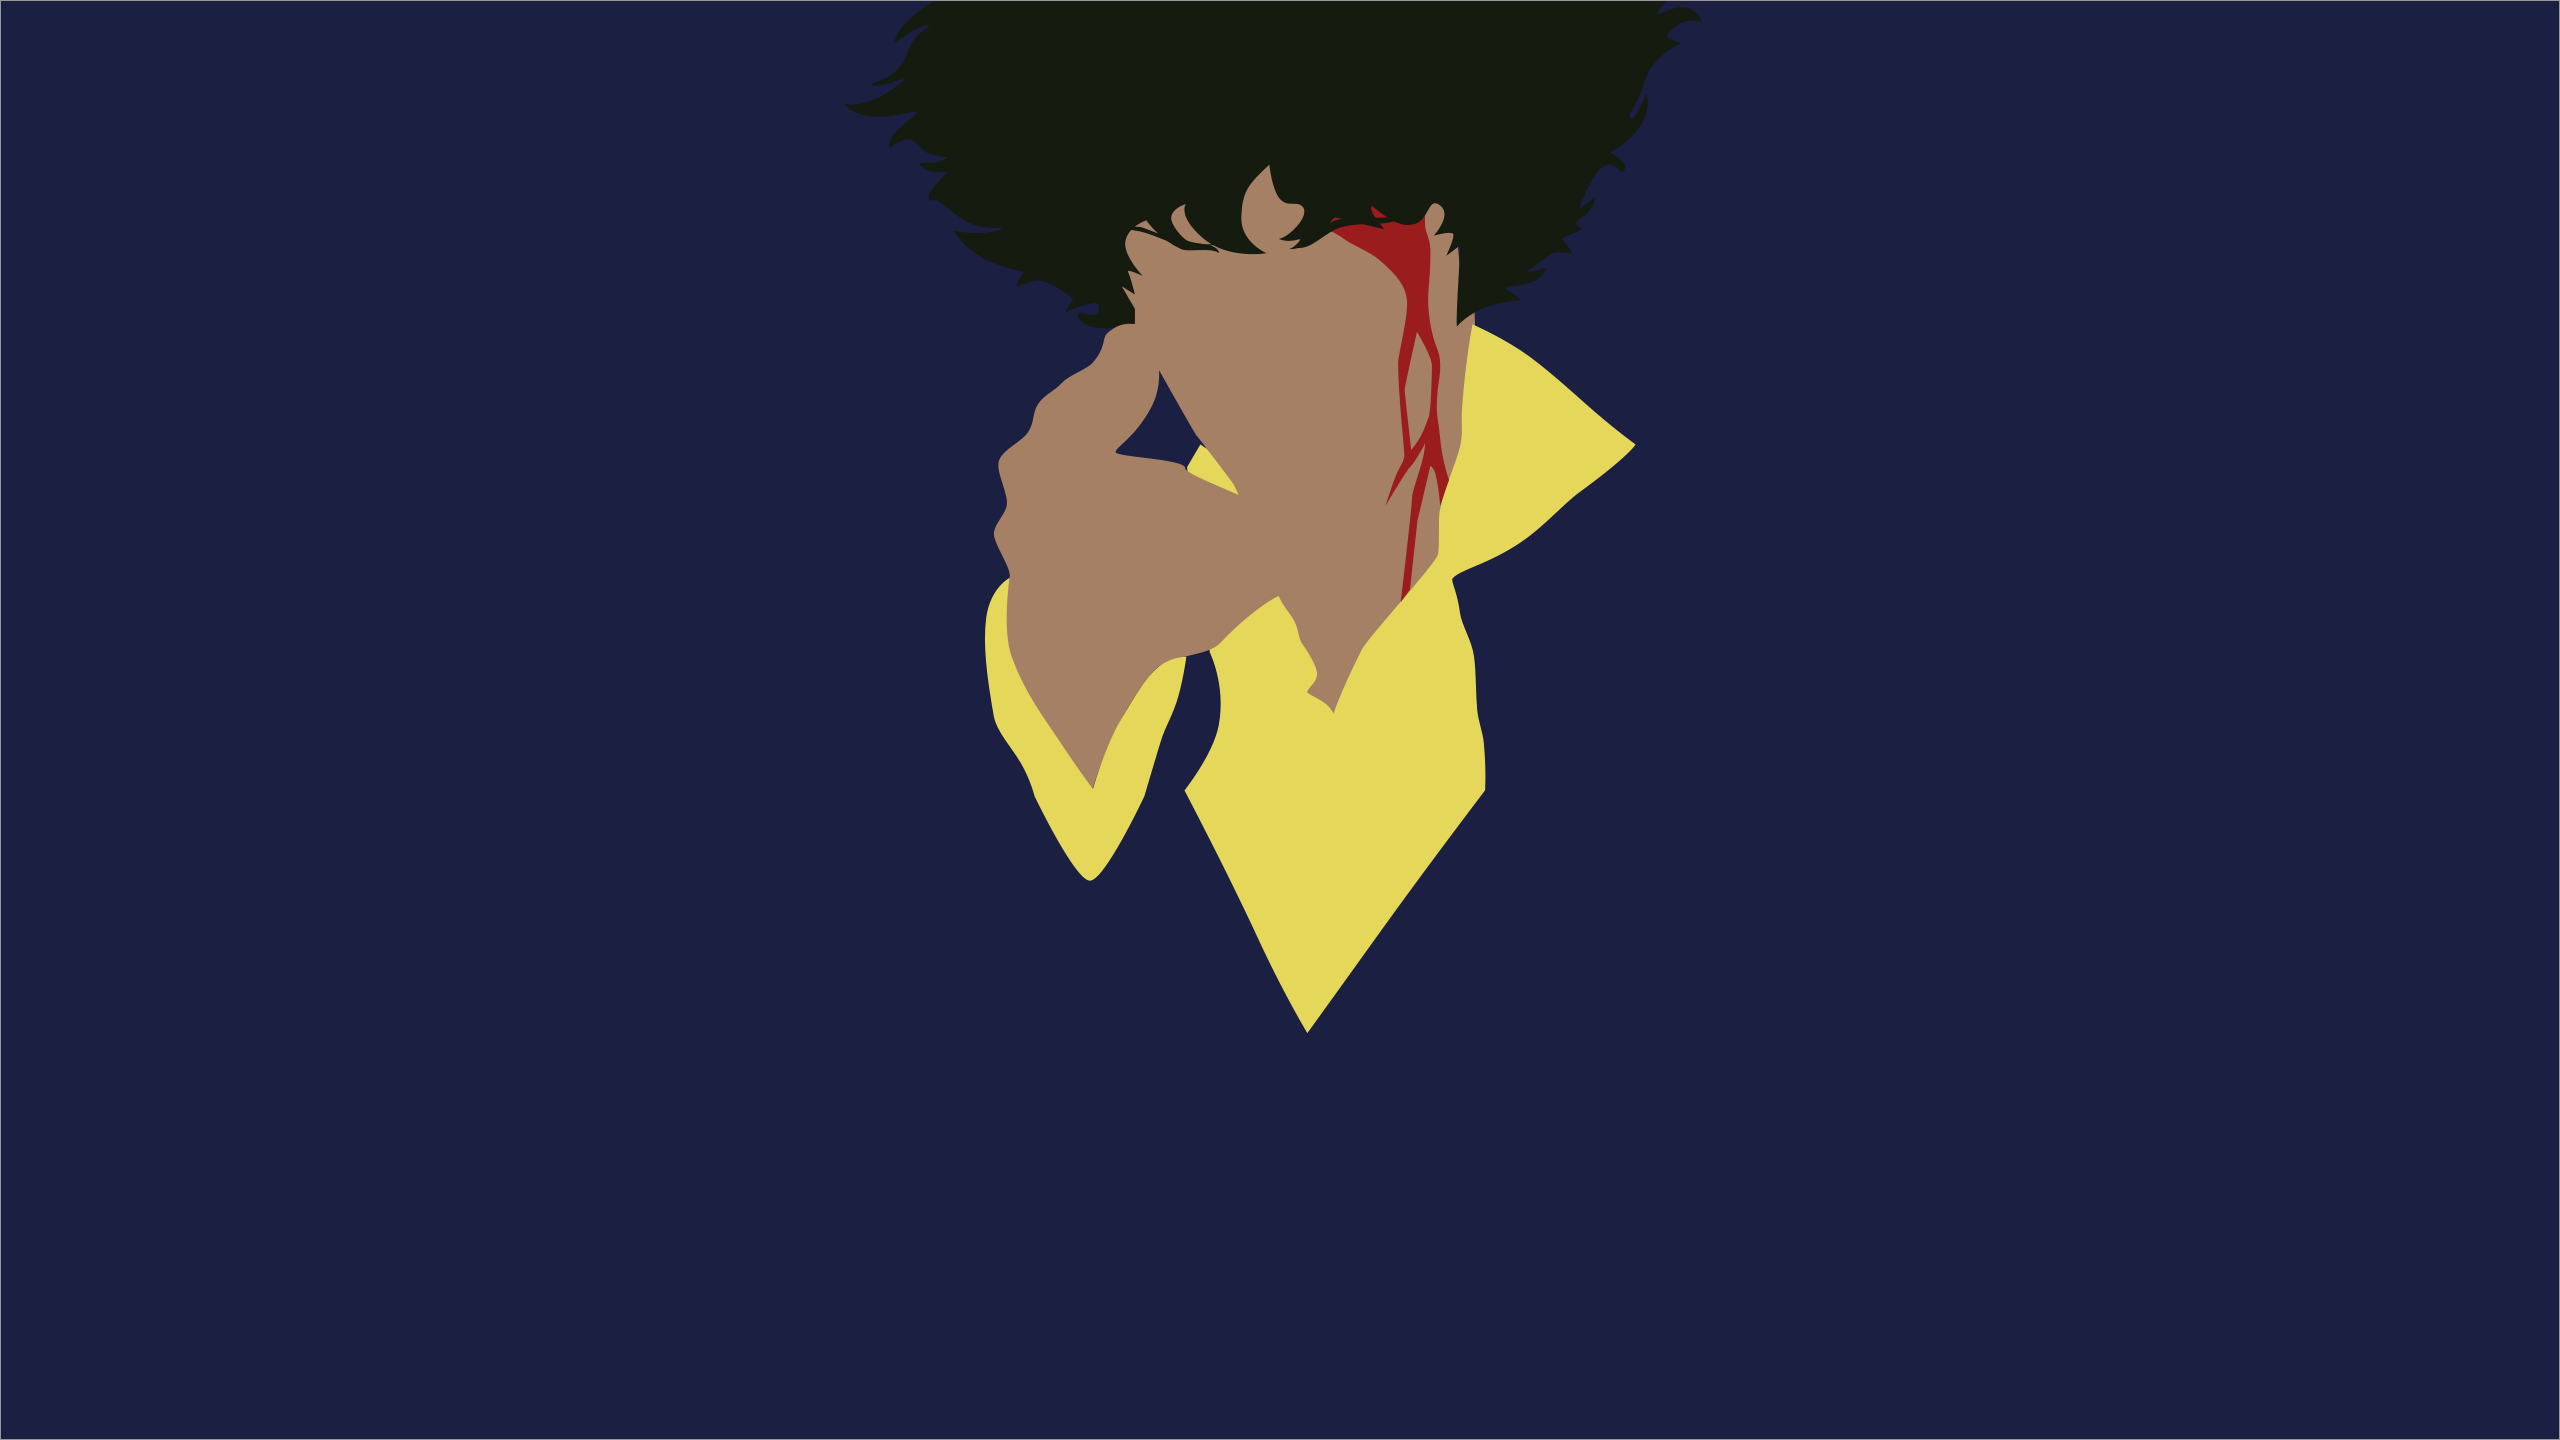 Minimalist cowboy bebop wallpaper v2 by porjin on deviantart for Deviantart minimal wallpaper